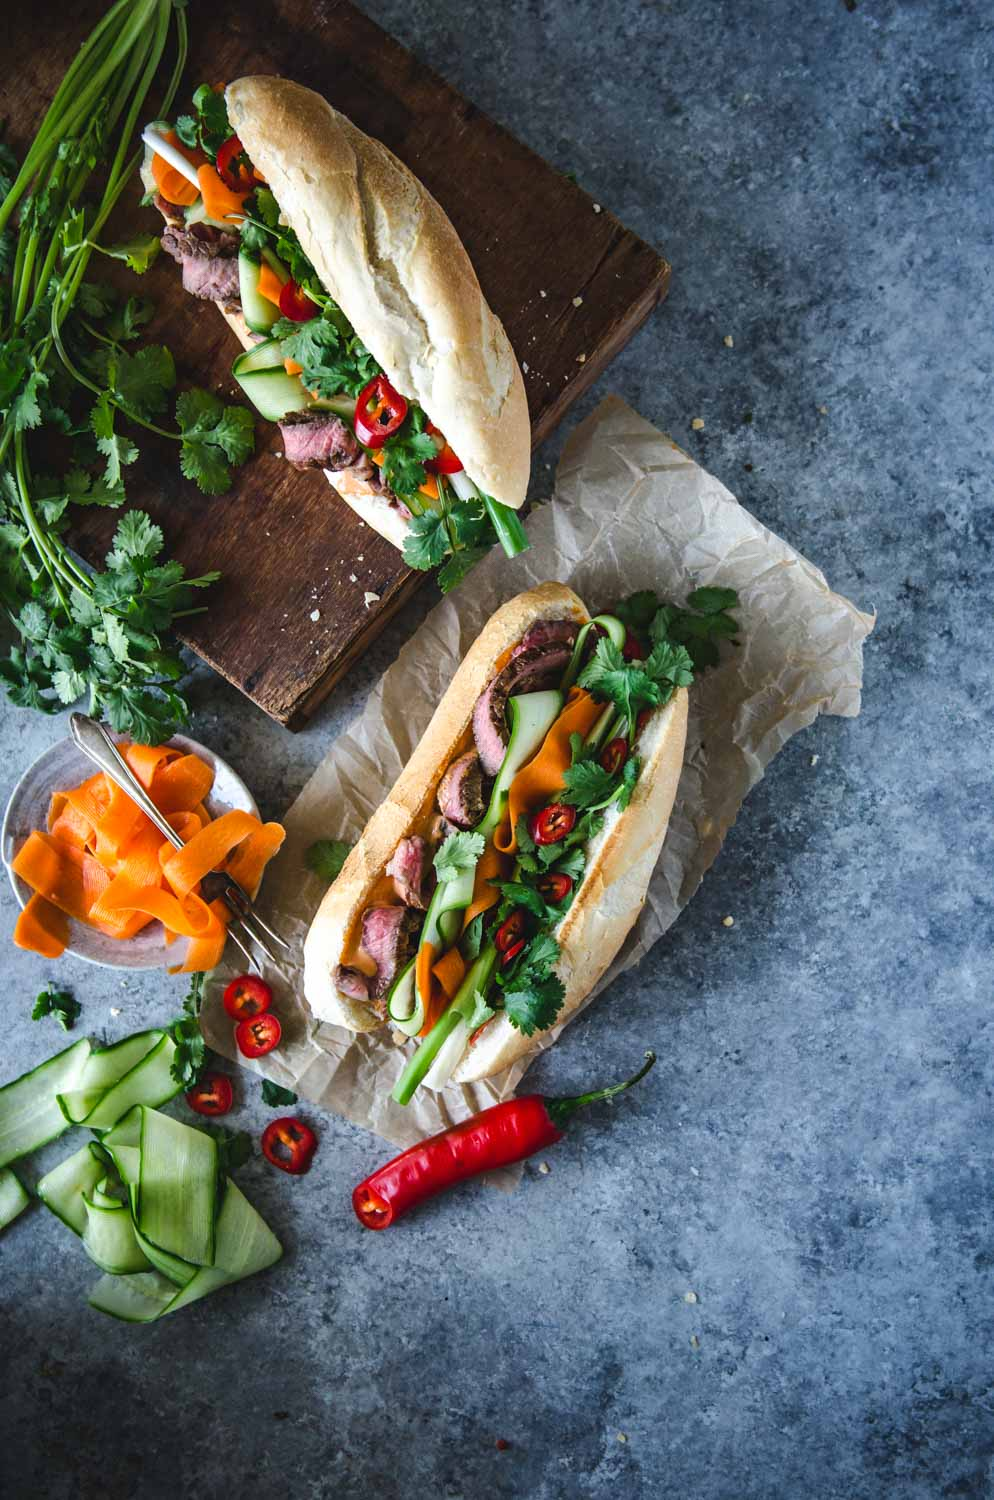 Nước chấm Steak Bánh Mì | Vietnamese Marinated Steak Sandwich | Chew Town Food Blog